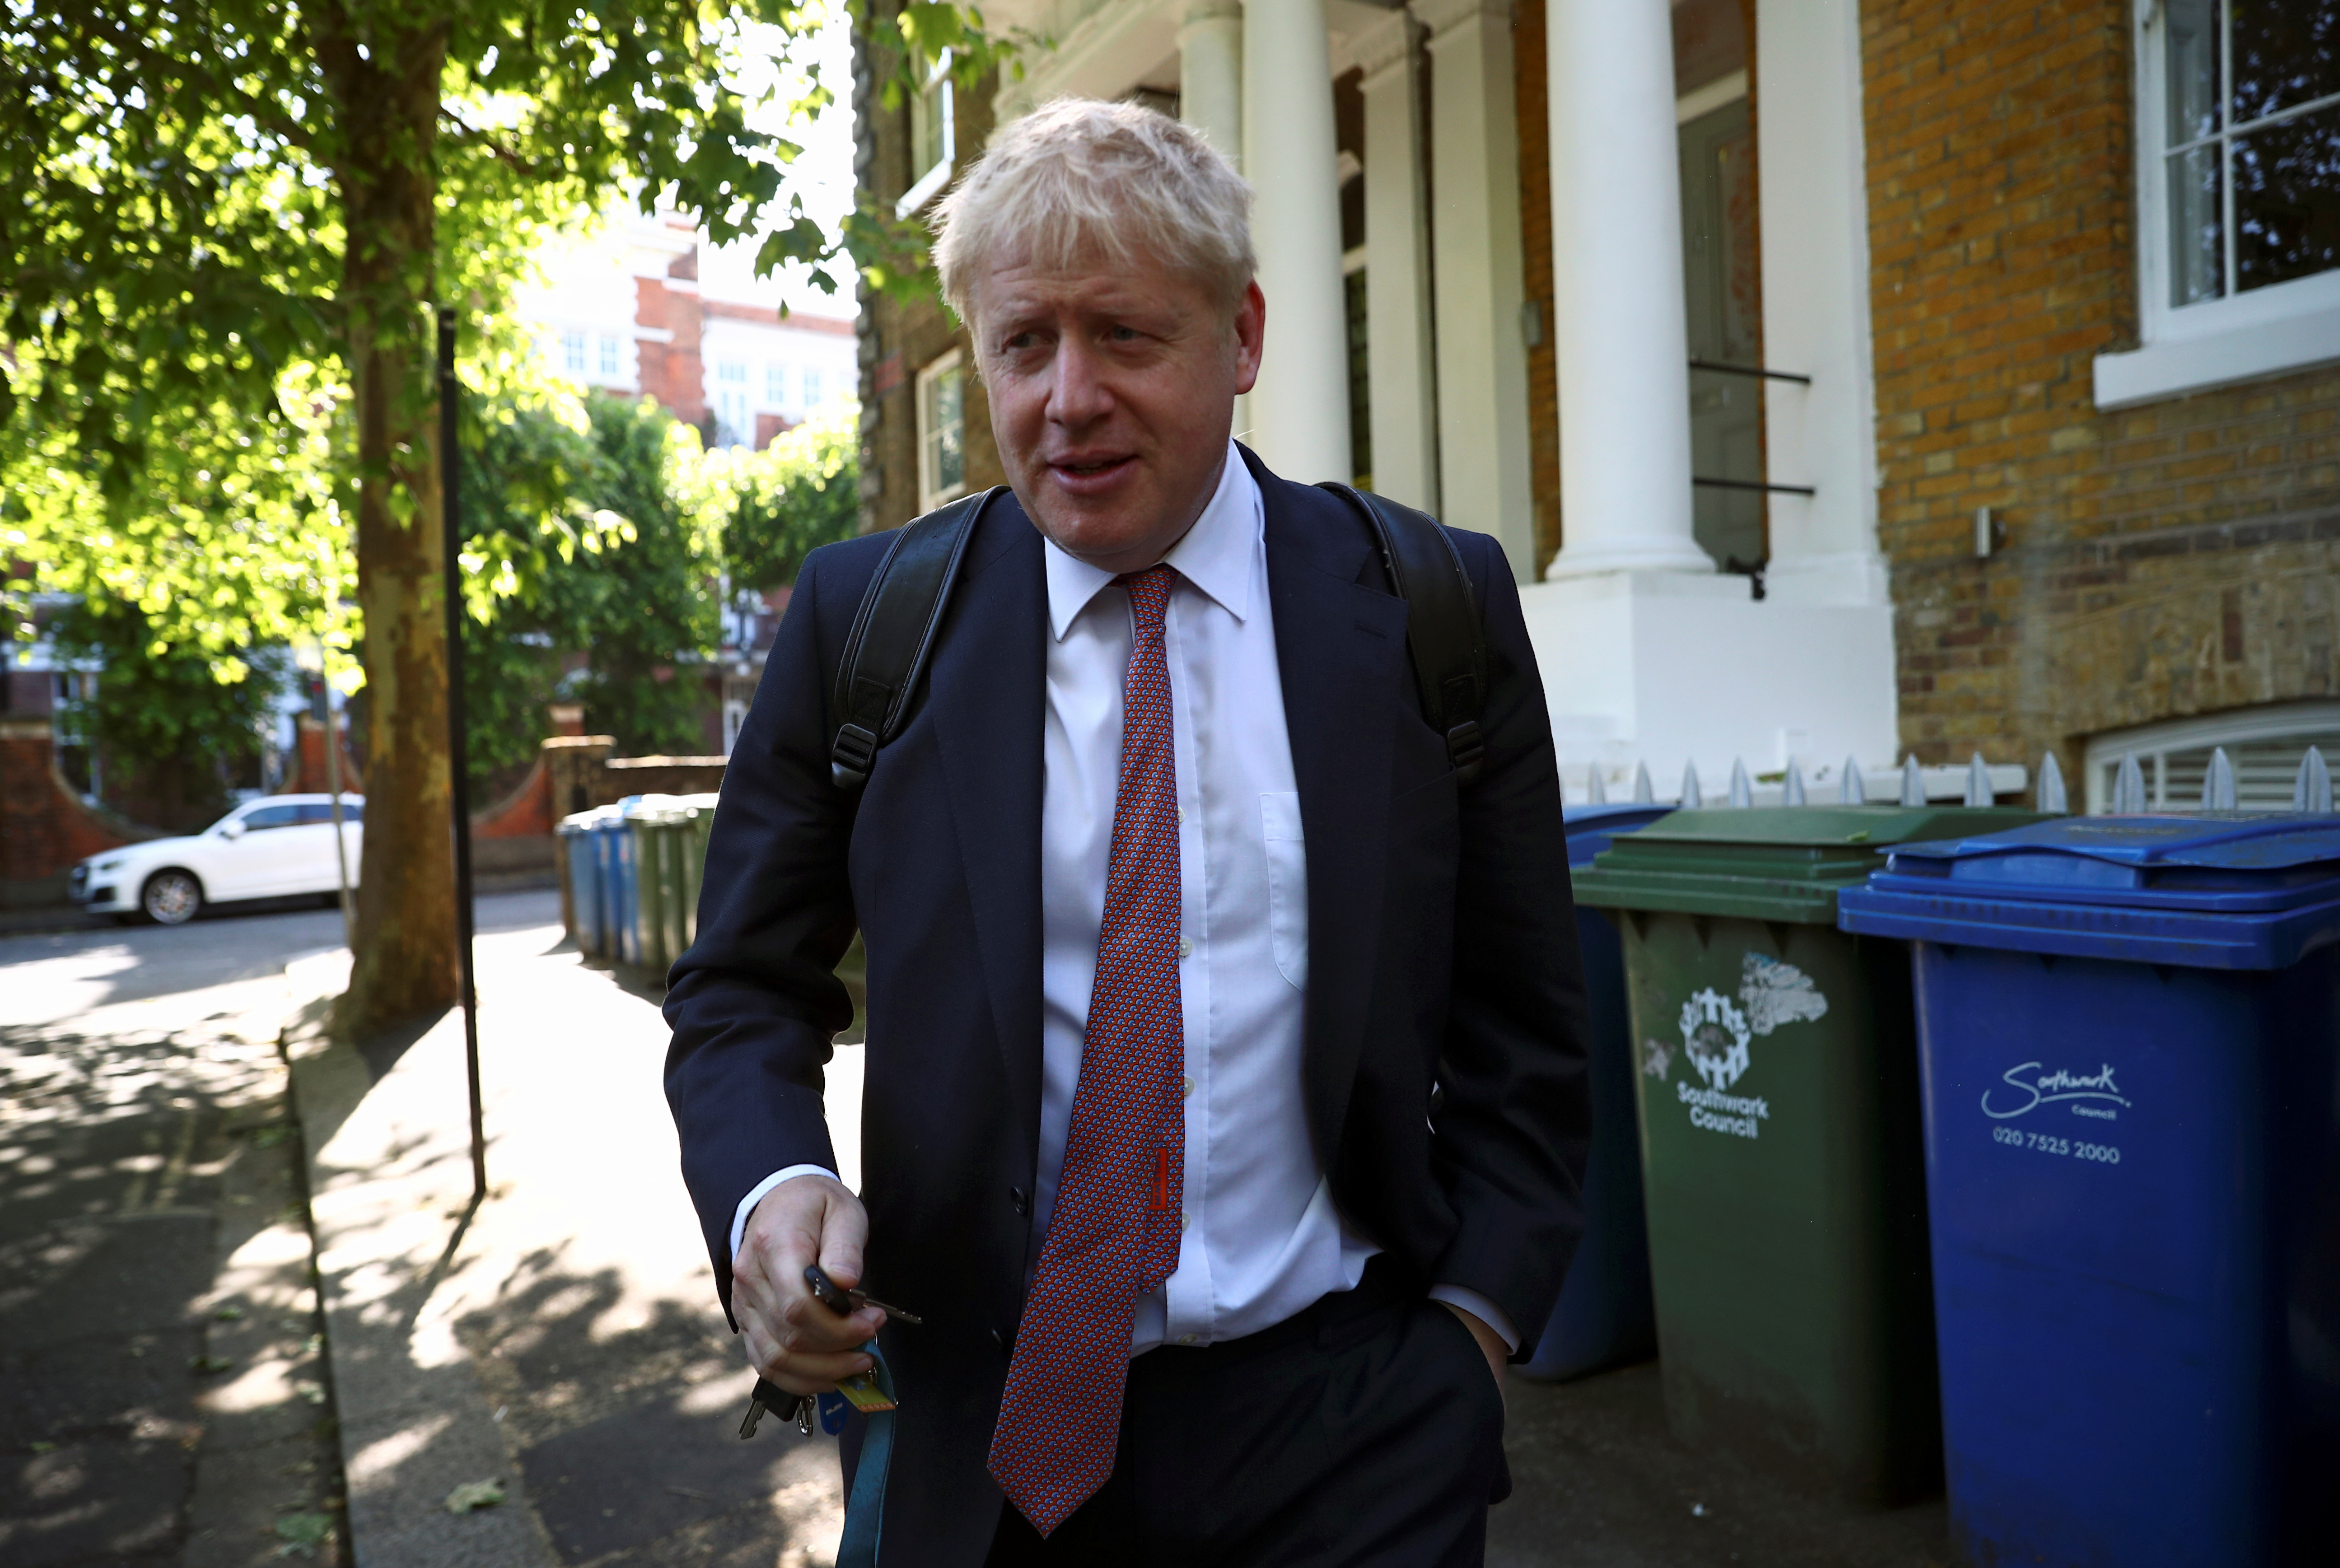 Former British Foreign Secretary Boris Johnson, who is running to succeed Theresa May as Prime Minister, leaves his home in London, Britain, May 30, 2019. REUTERS/Hannah McKay - RC1DAB2CCF60